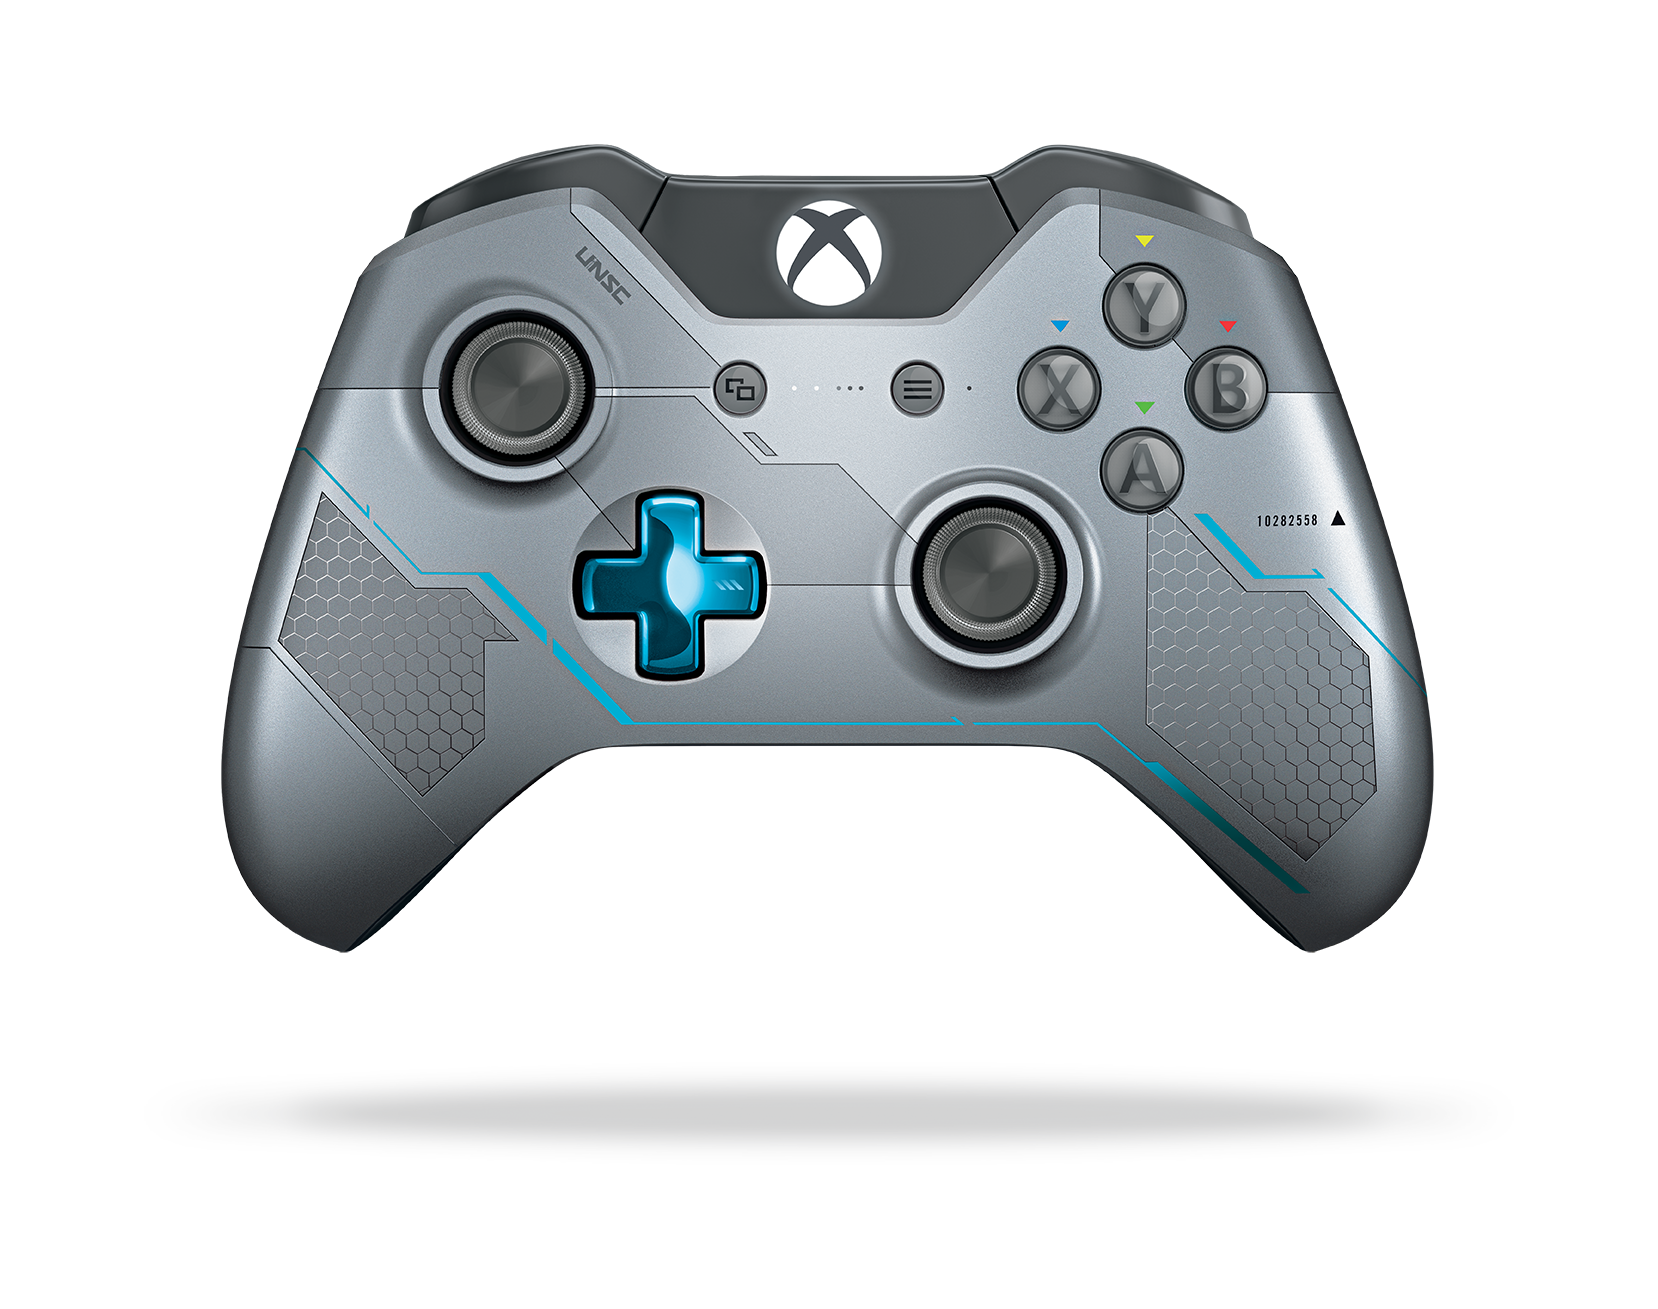 Xbox-One-Limited-Edition-Halo-5-Locke-Controller-Front-Render-png